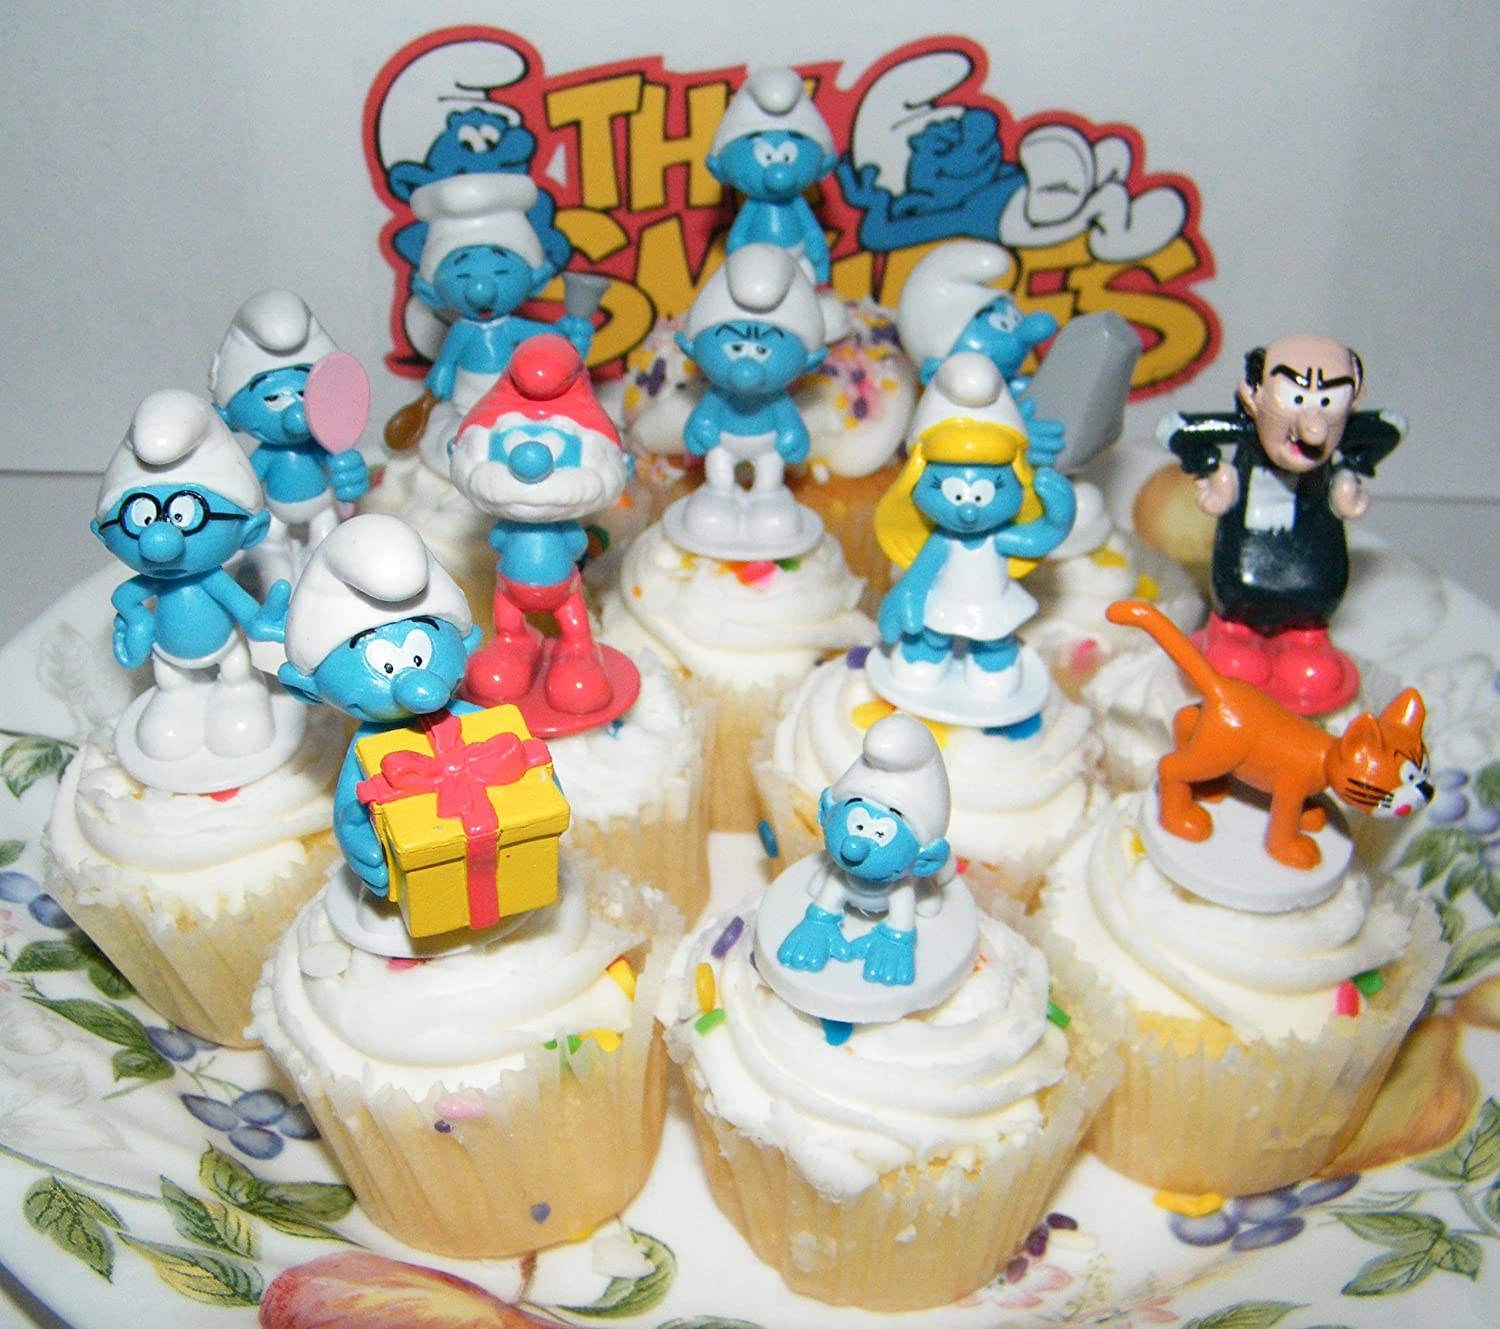 Smurf Deluxe Figure Cake Toppers Cupcake Party Favor Decorations Set Of 12 With Baby Smurf Brainy Smurf Smurfette Gargamel Azrael And More